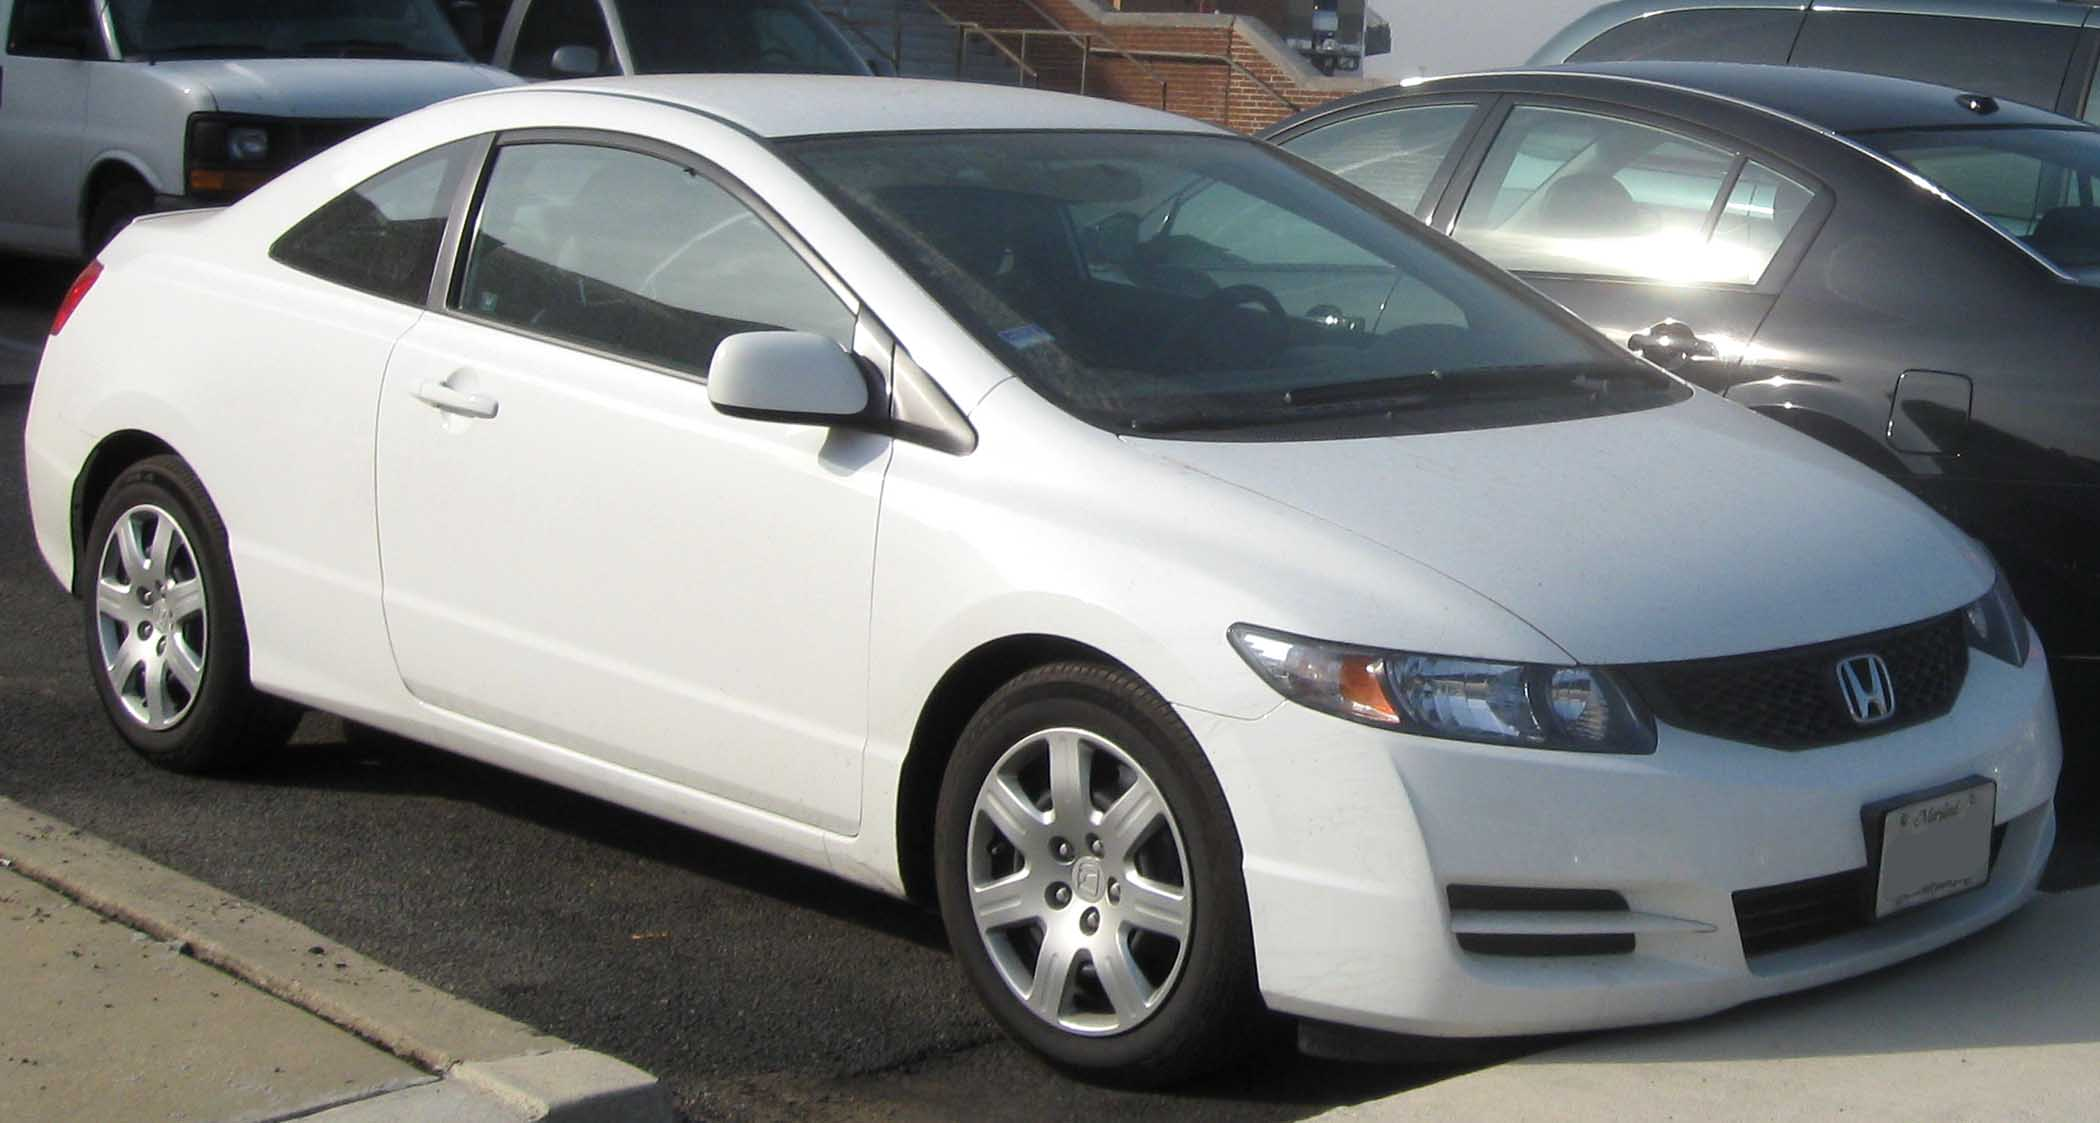 Exceptional File:2009 Honda Civic LX Coupe